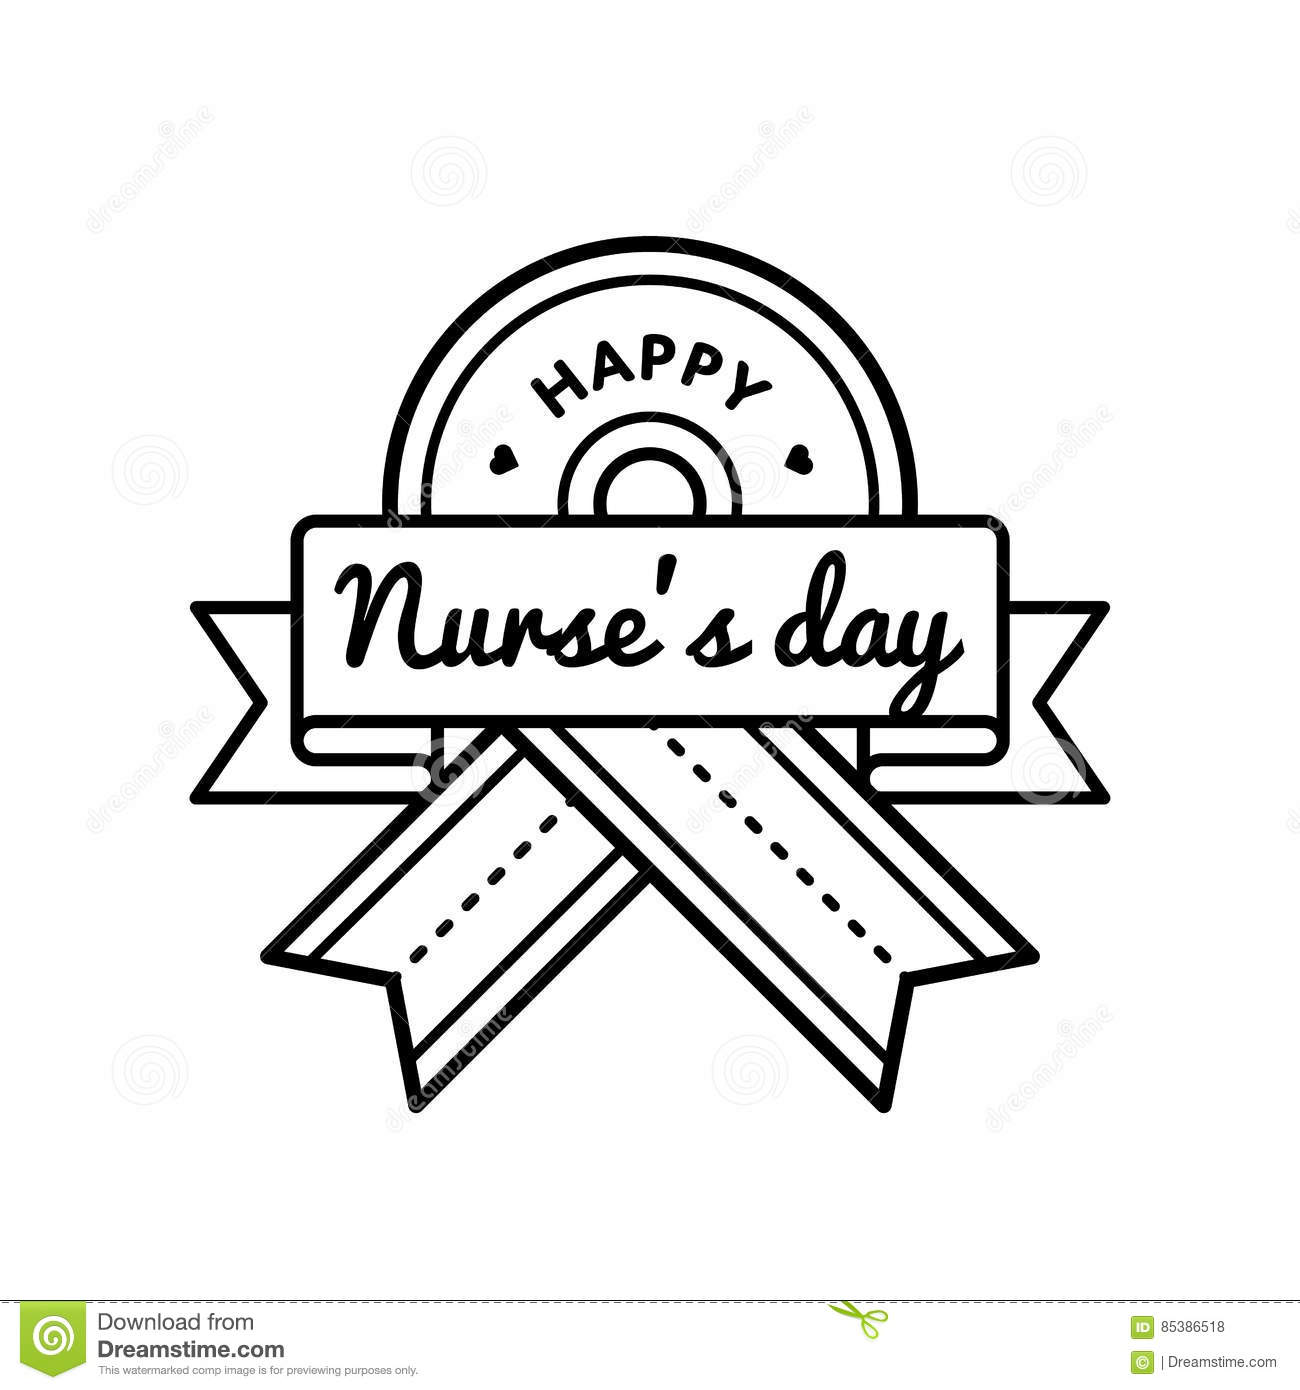 Happy nurses day greeting emblem stock vector illustration of card happy nurses day greeting emblem m4hsunfo